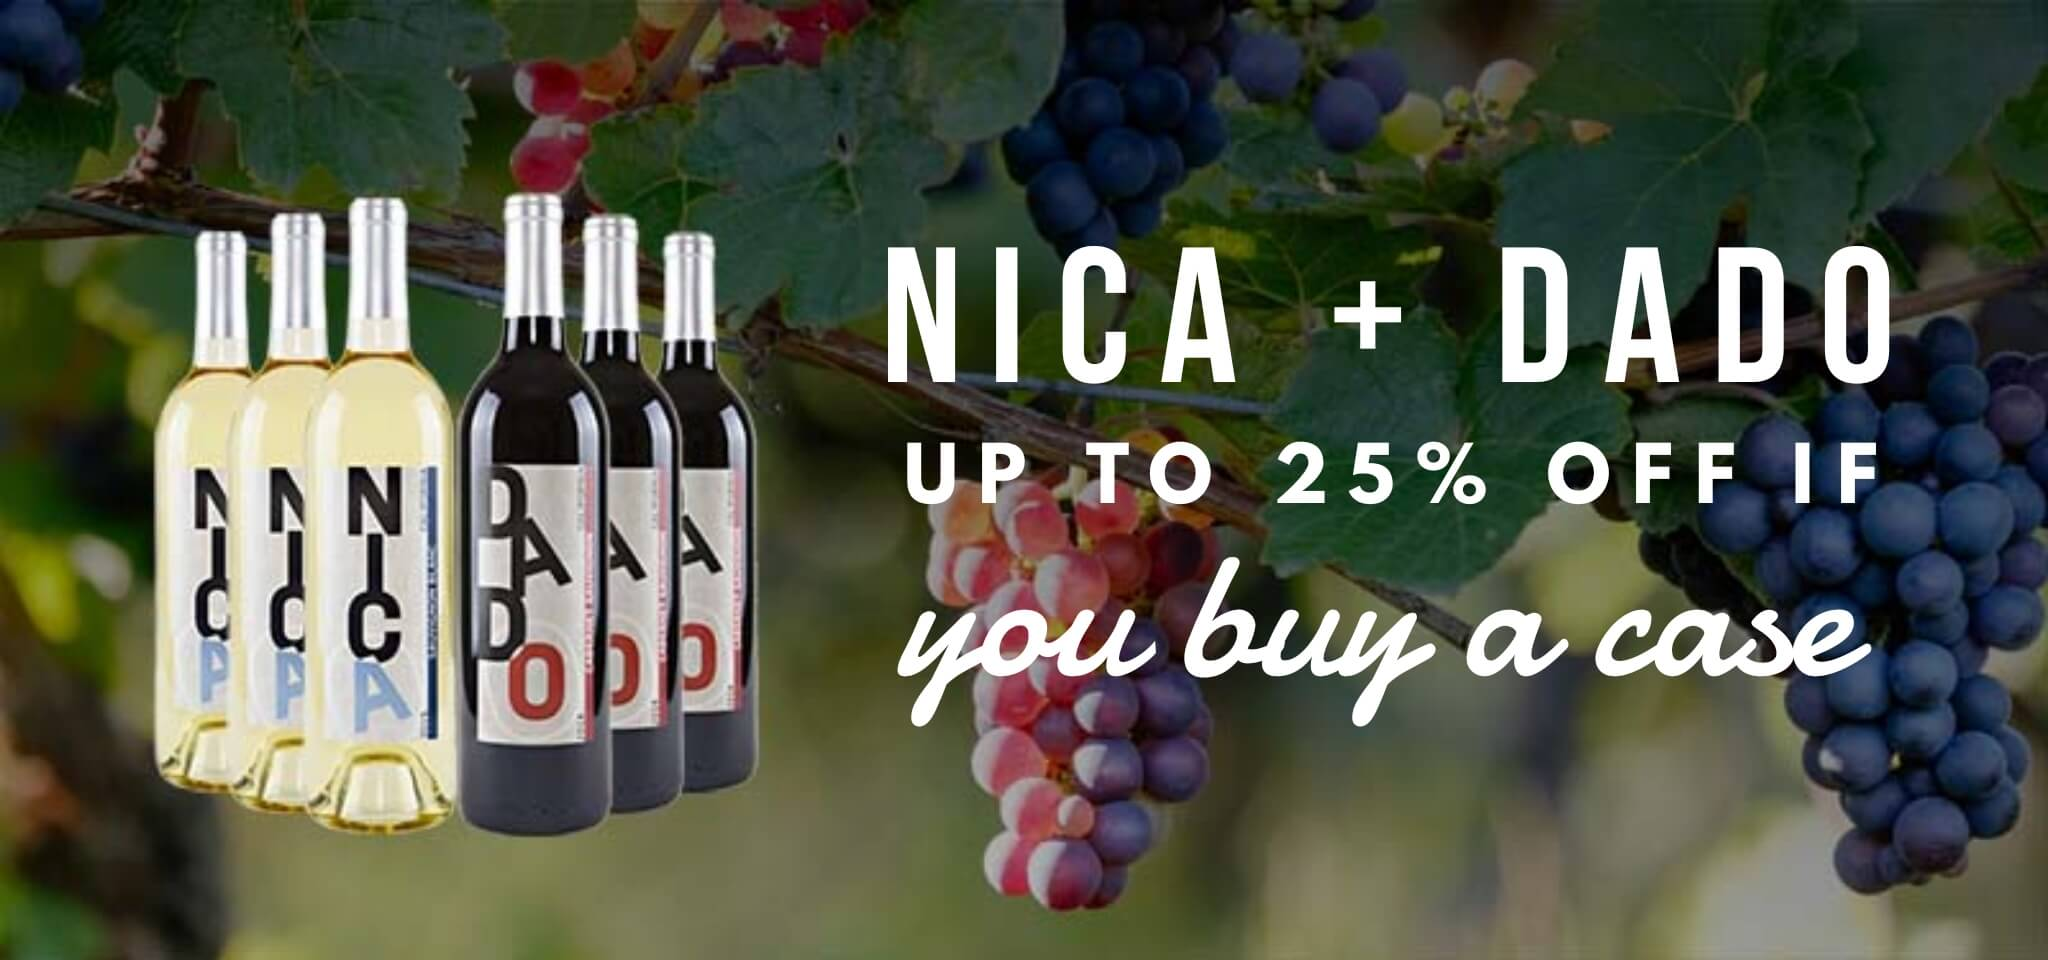 Nica and Dado - Buy Napa Valley Wines in the Philippines